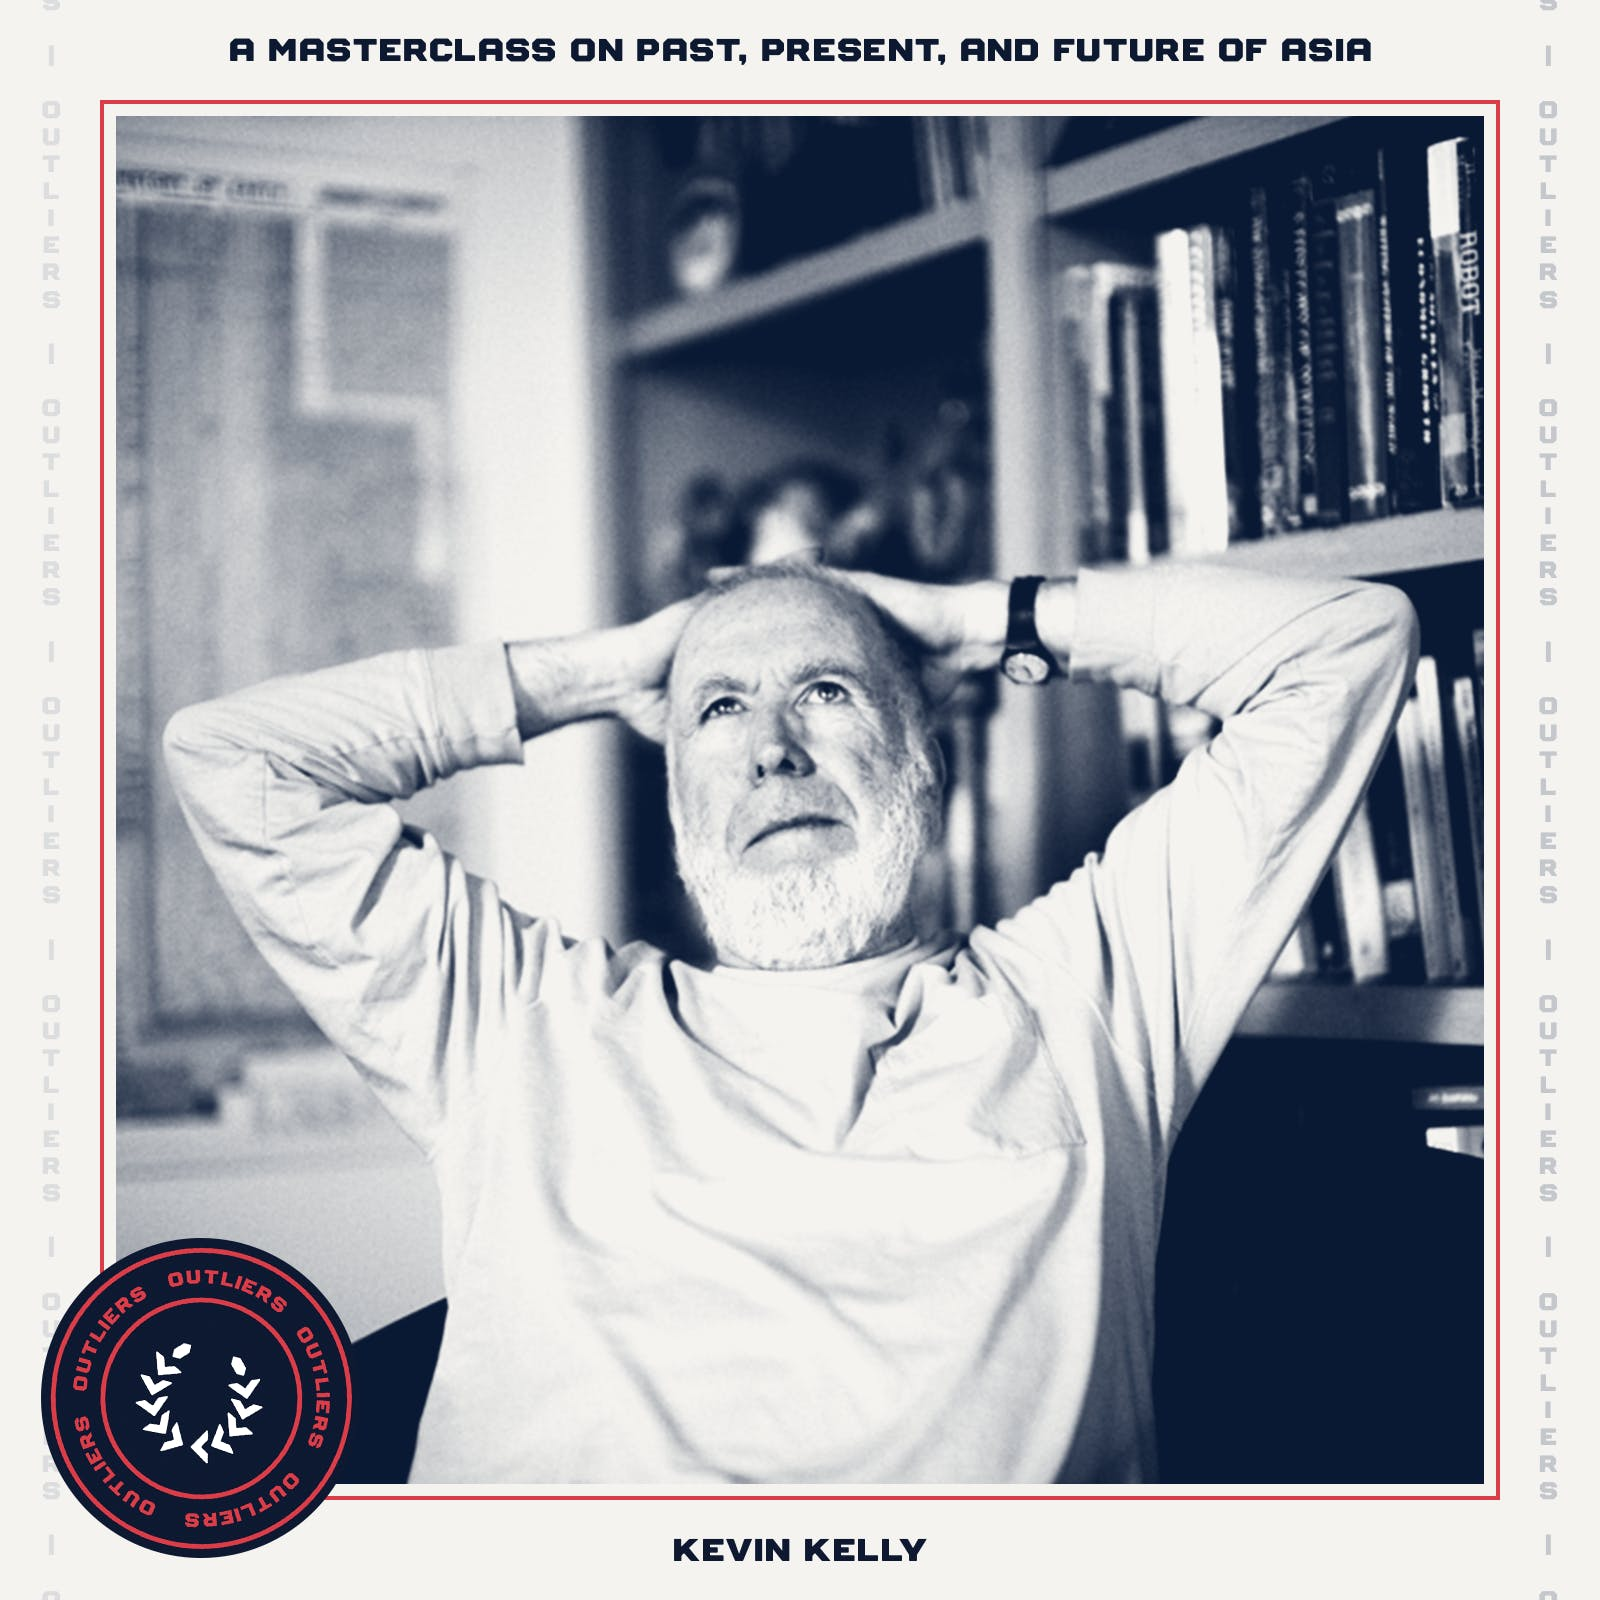 #28 Kevin Kelly: A Masterclass on the Past, Present, and Future of Asia